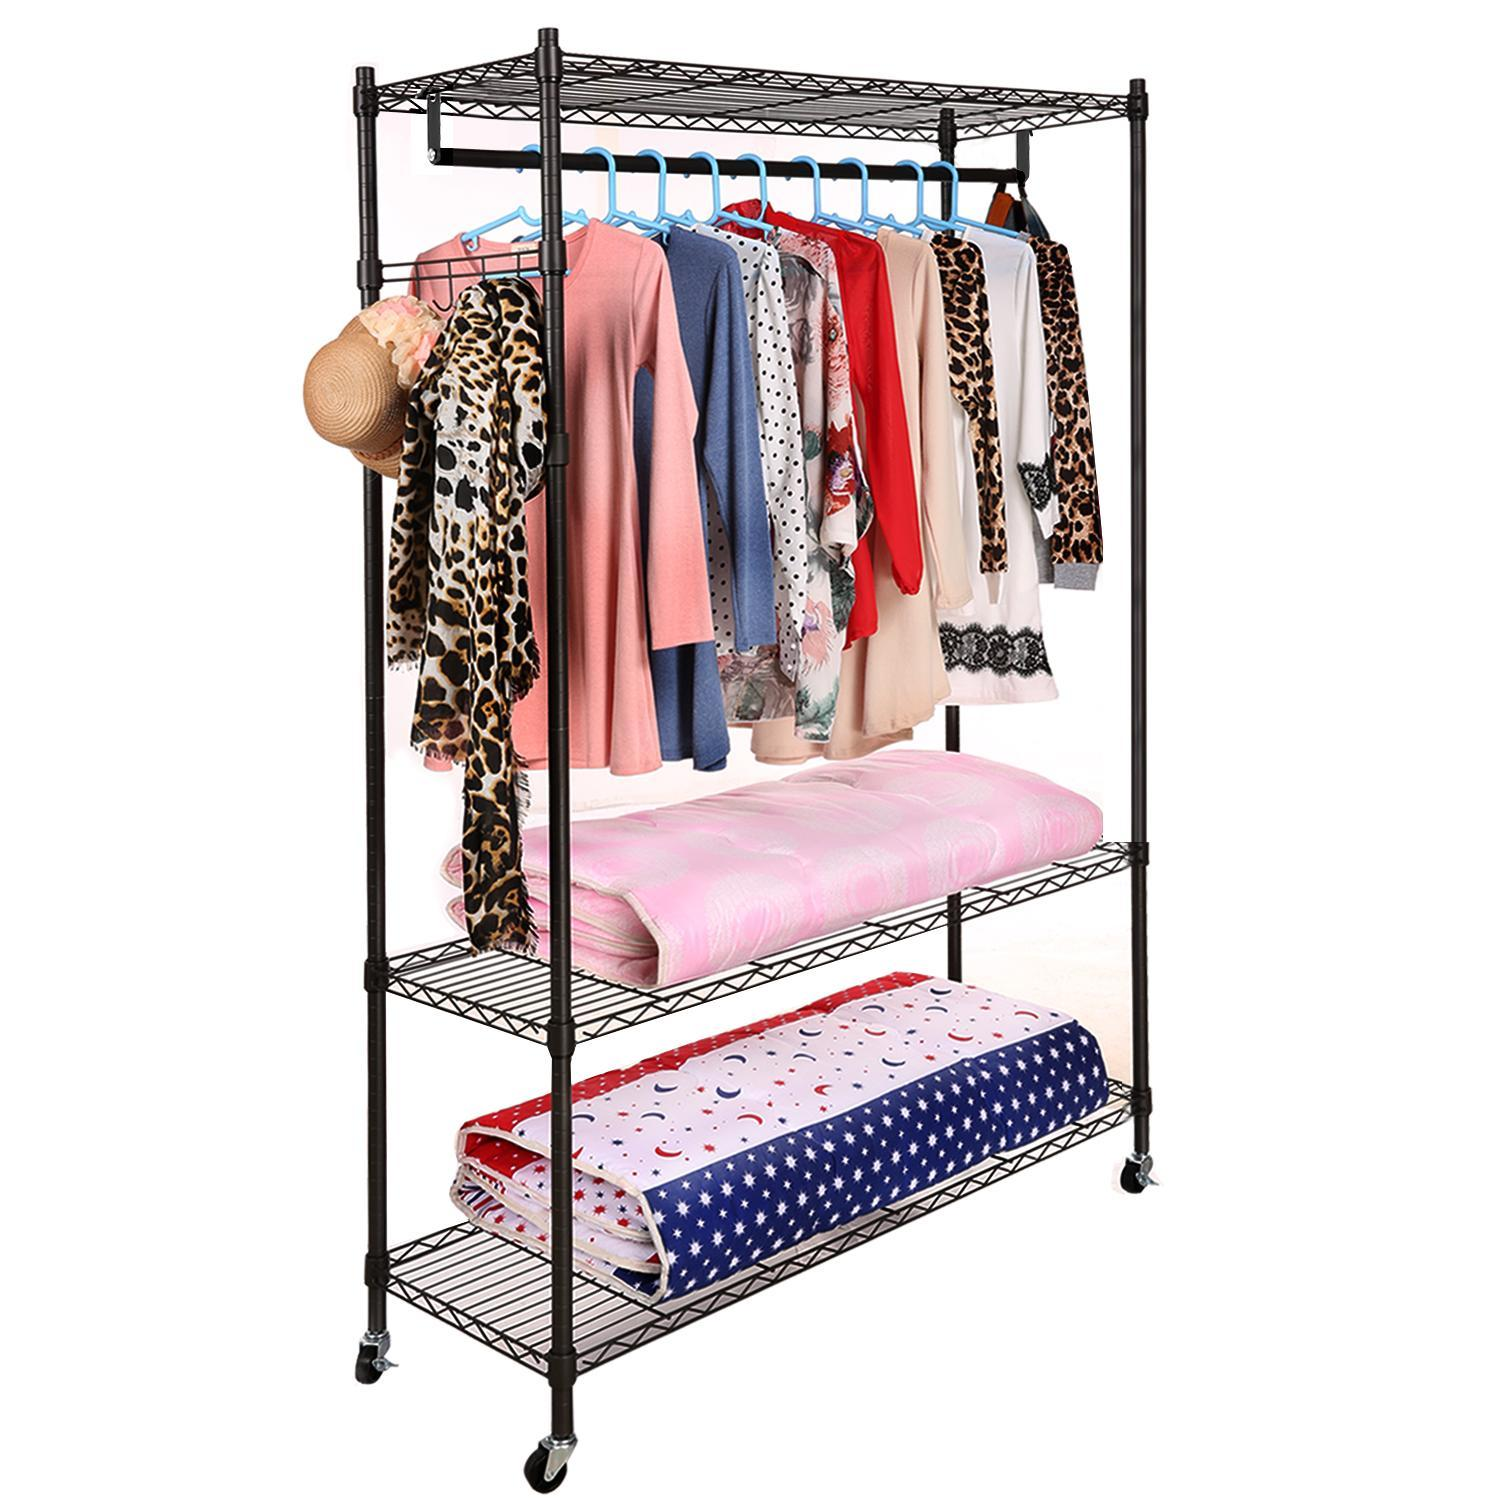 3-Tier Wire Closet Organizer Rack Shelving Clothes Shelf  with Side Hook And Wheels WLT